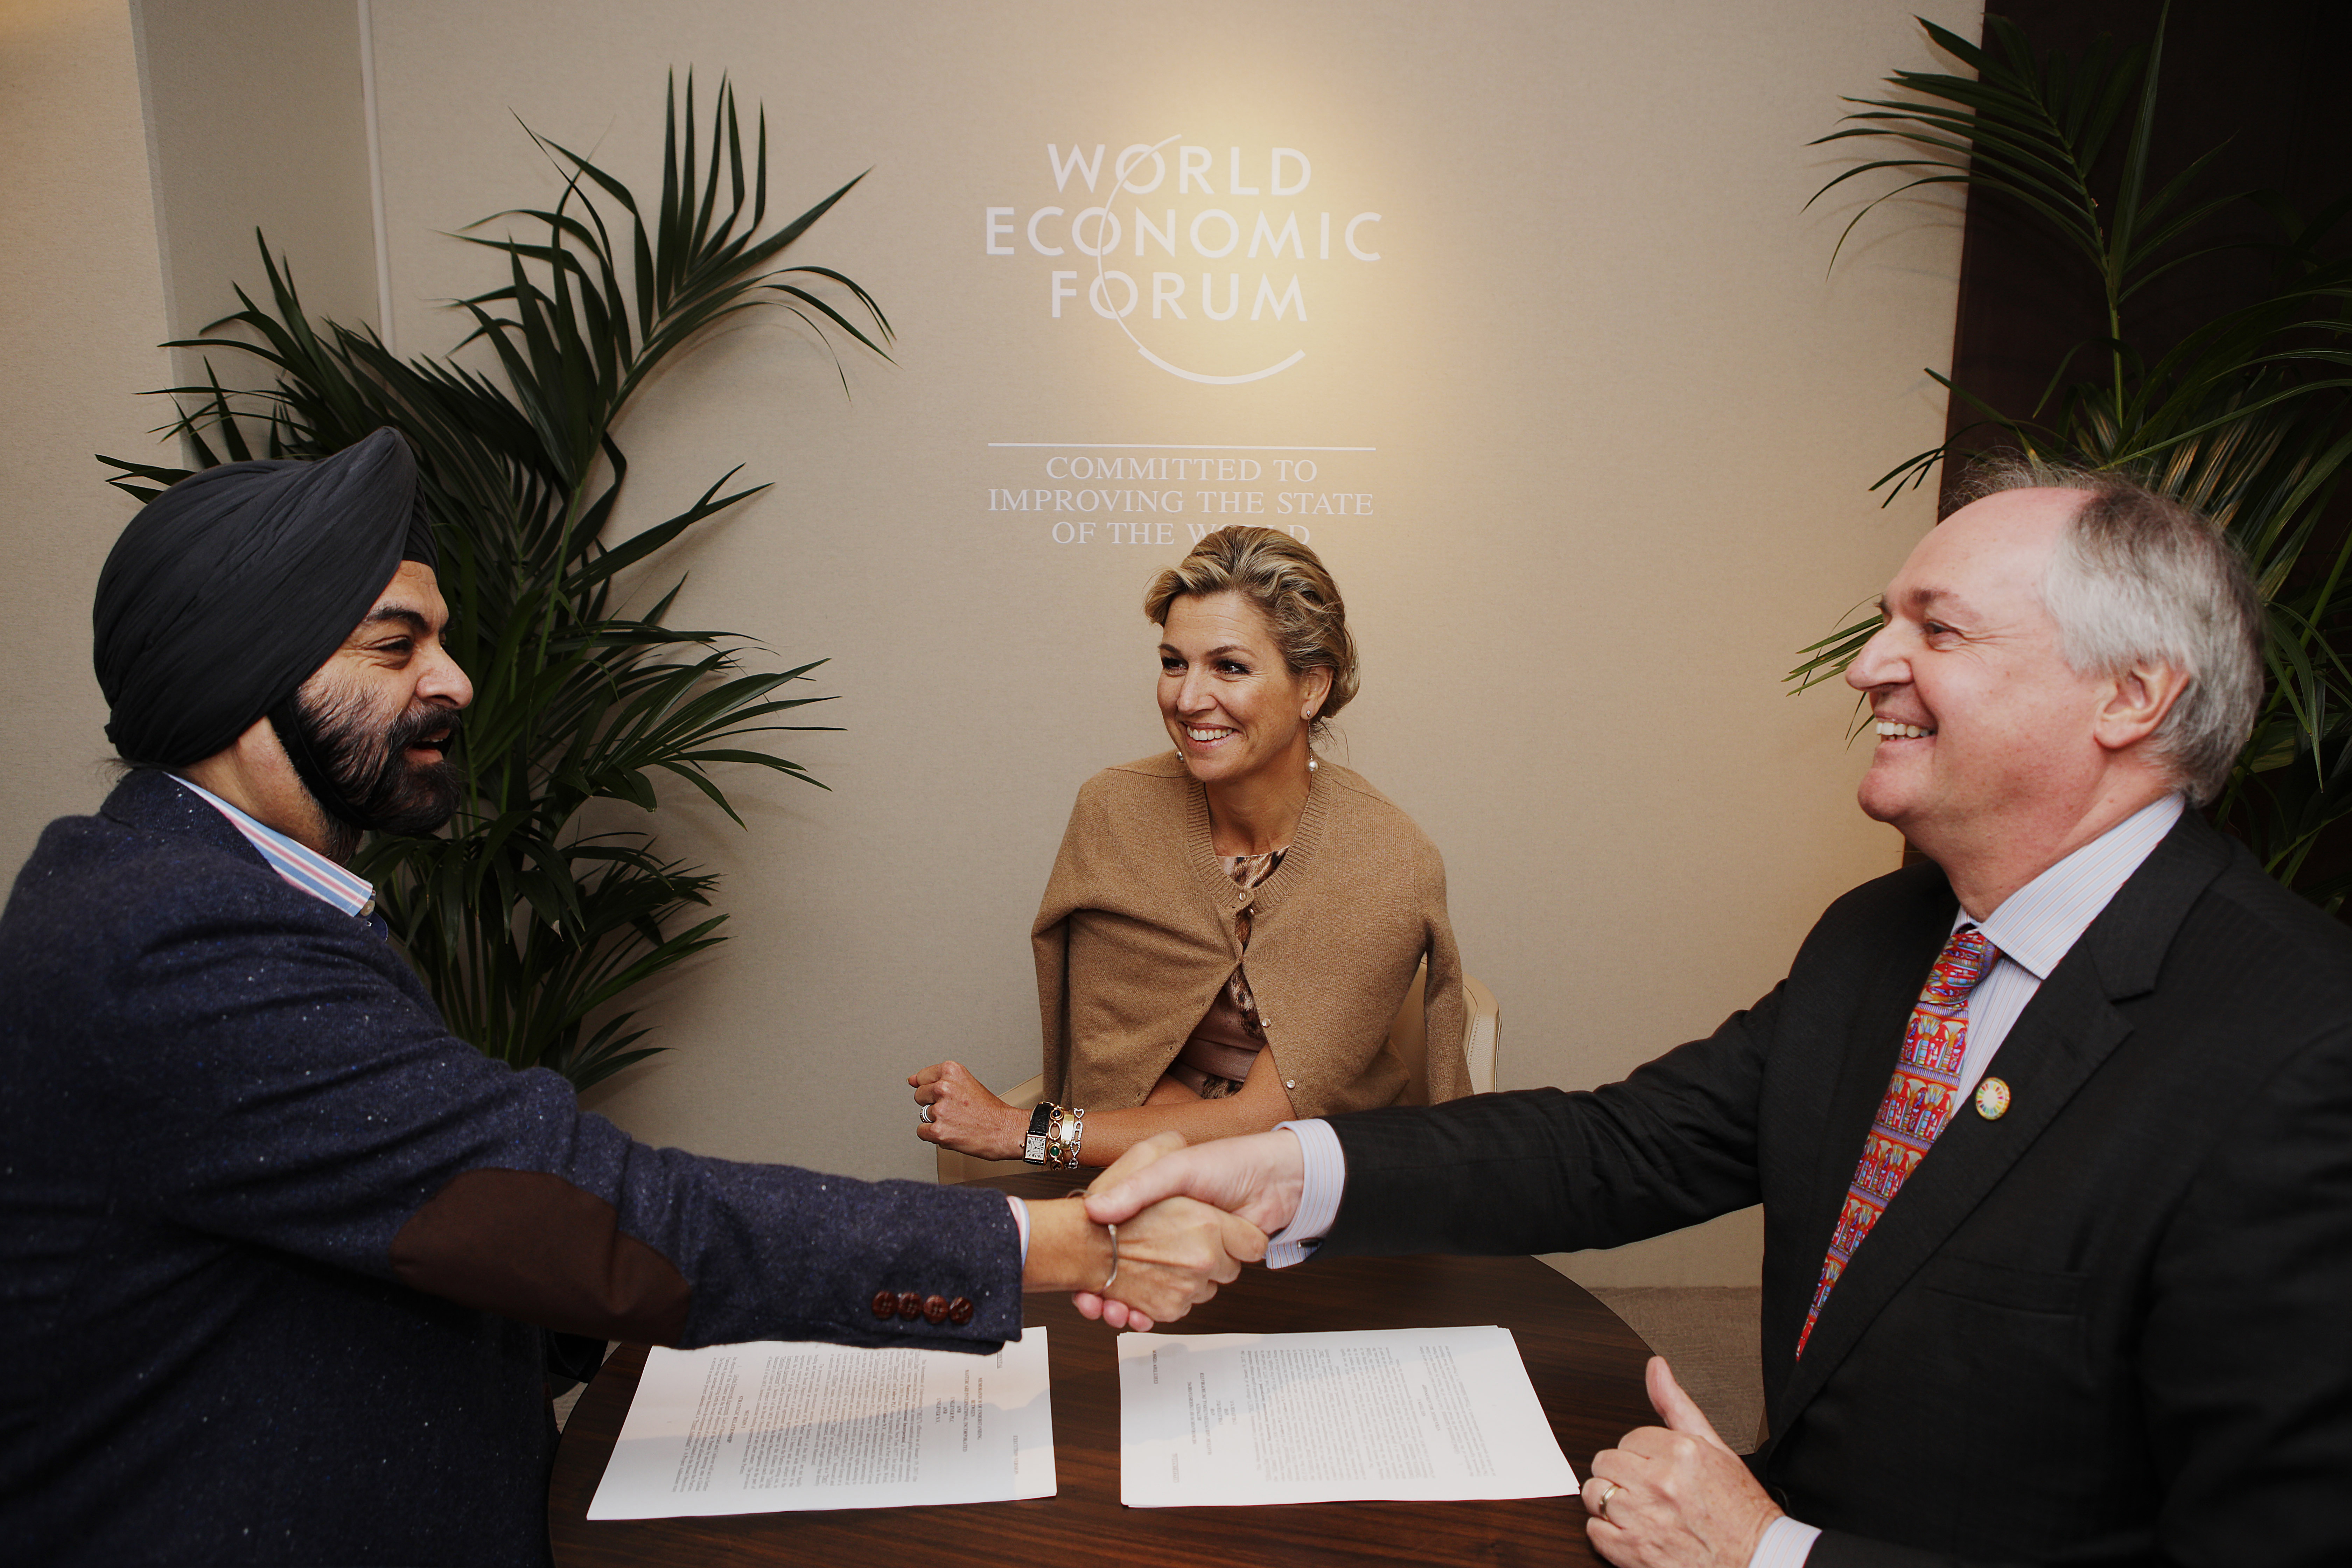 During the World Economic Forum's Annual Meeting in Davos, Her Majesty Queen Maxima of the Netherlands, UN Secretary-General's Special Advocate for Inclusive Finance for Development (center) witnessed Ajay Banga, president and CEO of Mastercard (left), and Paul Polman, Chief Executive of Unilever (right), signing a strategic partnership designed to advance financial inclusion efforts by empowering small and micro businesses in emerging markets. (Photo: Business Wire)